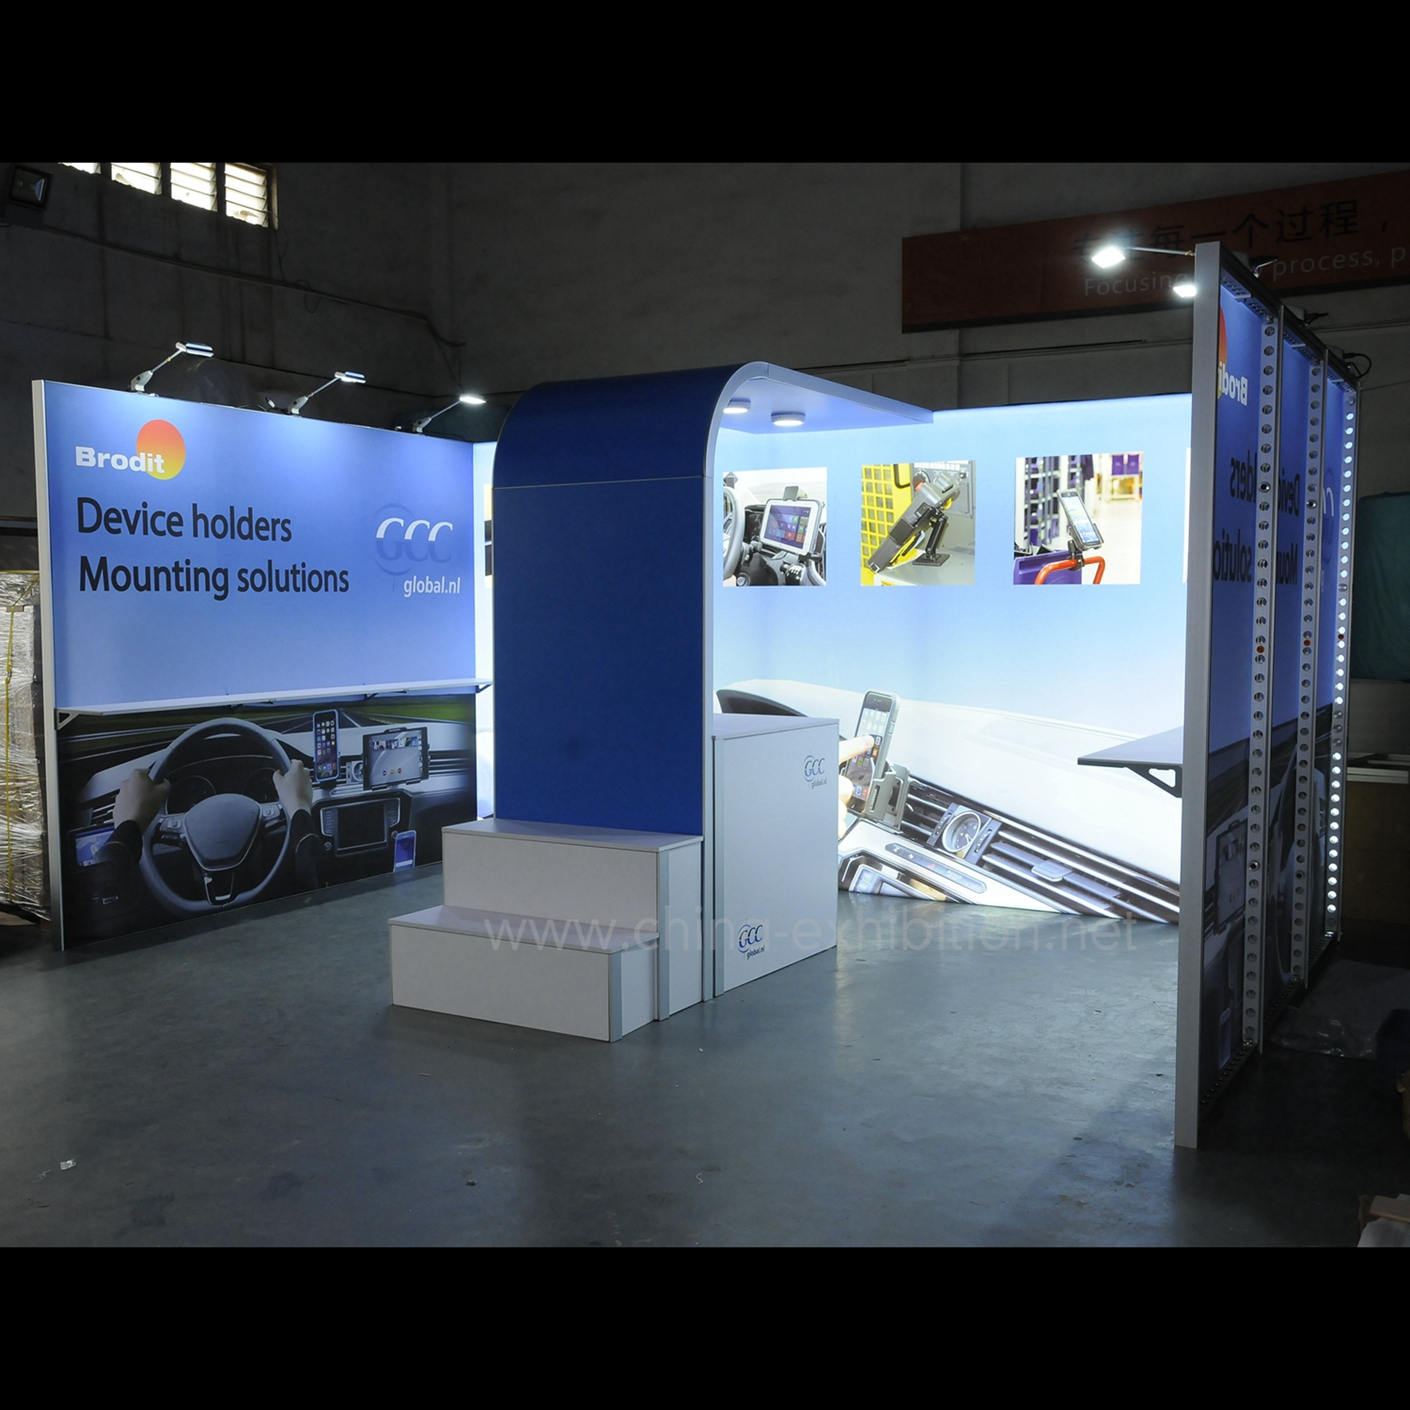 Mockup Trade Free George Nyc Exhibit Booth Manufacturers - Buy Exhibit  Booth Manufacturers,Exhibit Booth Manufacturers,Exhibit Booth Mockup  Product on